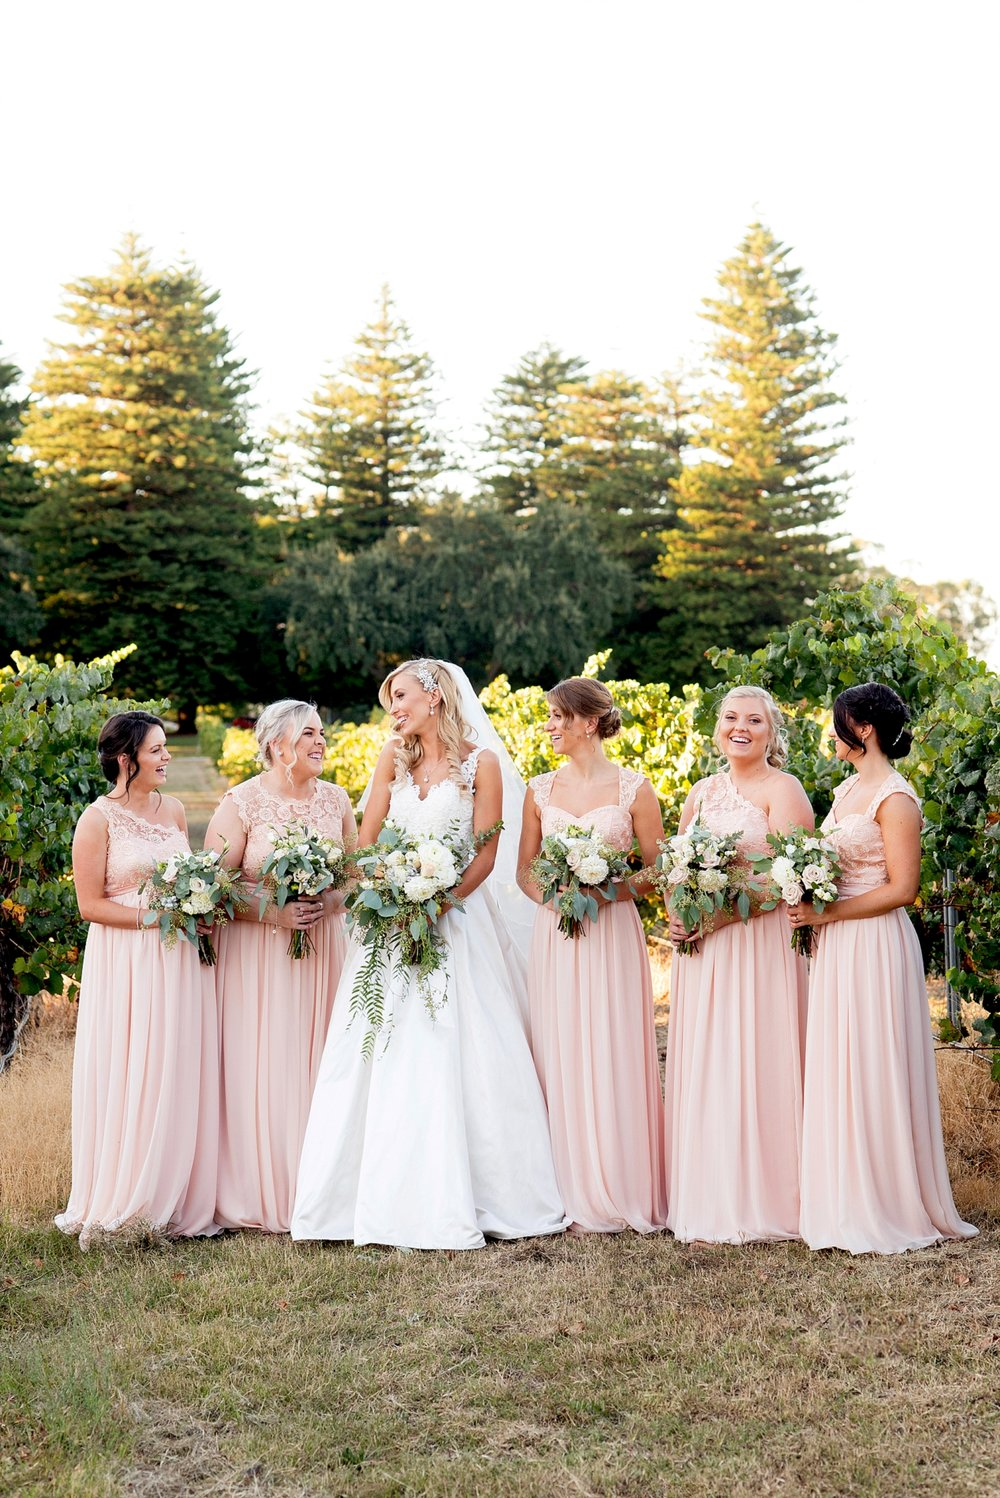 17_houghtons winery wedding perth.JPG